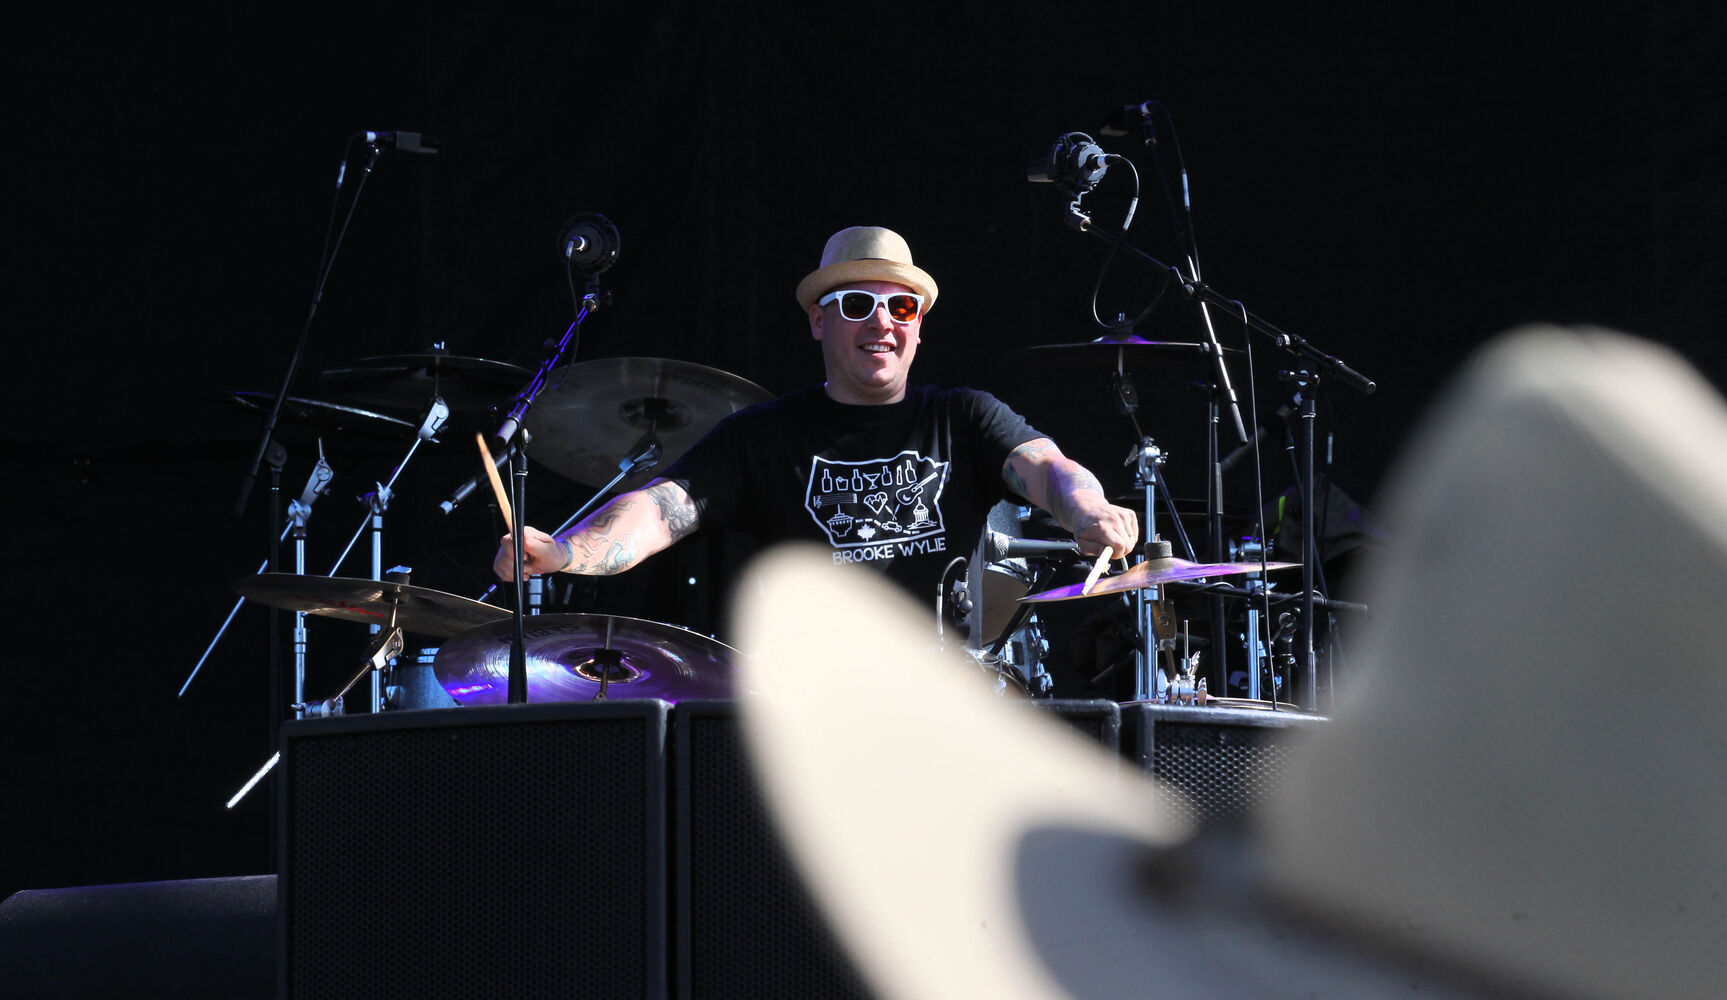 Emmet VanEtten, drummer with local blues band The Perpetrators, plays at the third annual Winnipeg BBQ & Blues Festival at Shaw Park Saturday. The festival takes place August 16th and 17th, and will feature the best in international, national and local blues performers along with the Winnipeg Free Press Pit Masters barbeque competition. (Ruth Bonneville / The Winnipeg Free Press)